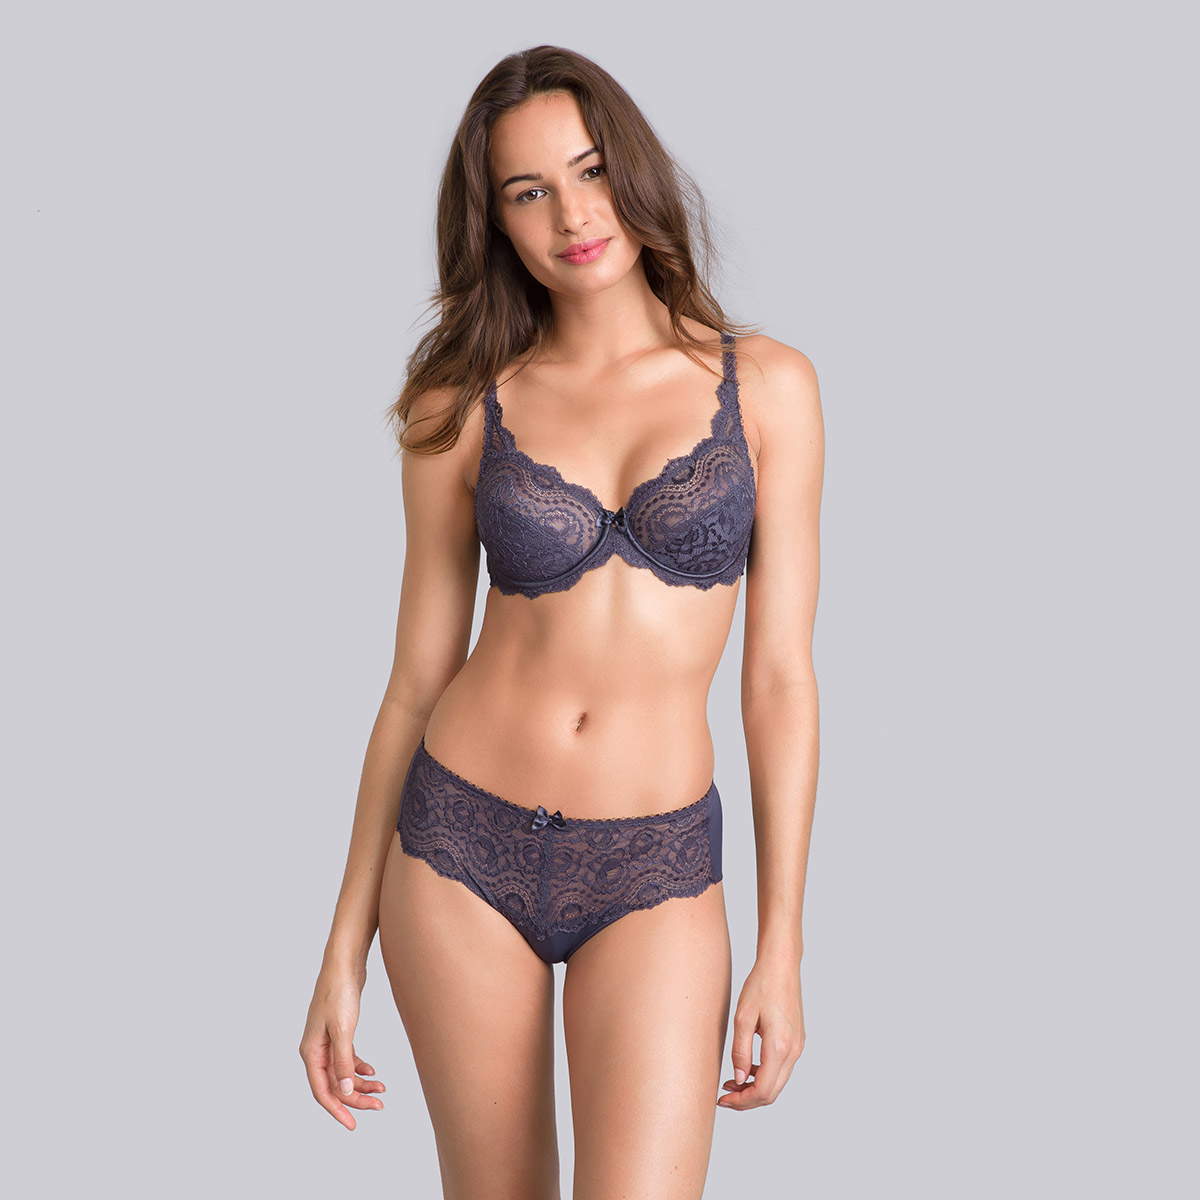 Steel grey full-cup bra - Flower Elegance-PLAYTEX